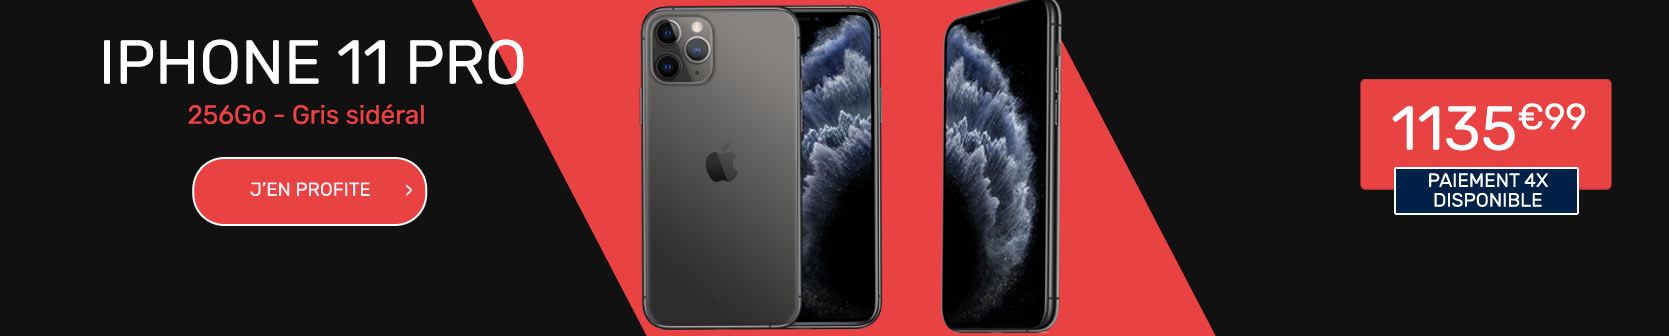 iPhone 11 Pro 256Go gris sideral